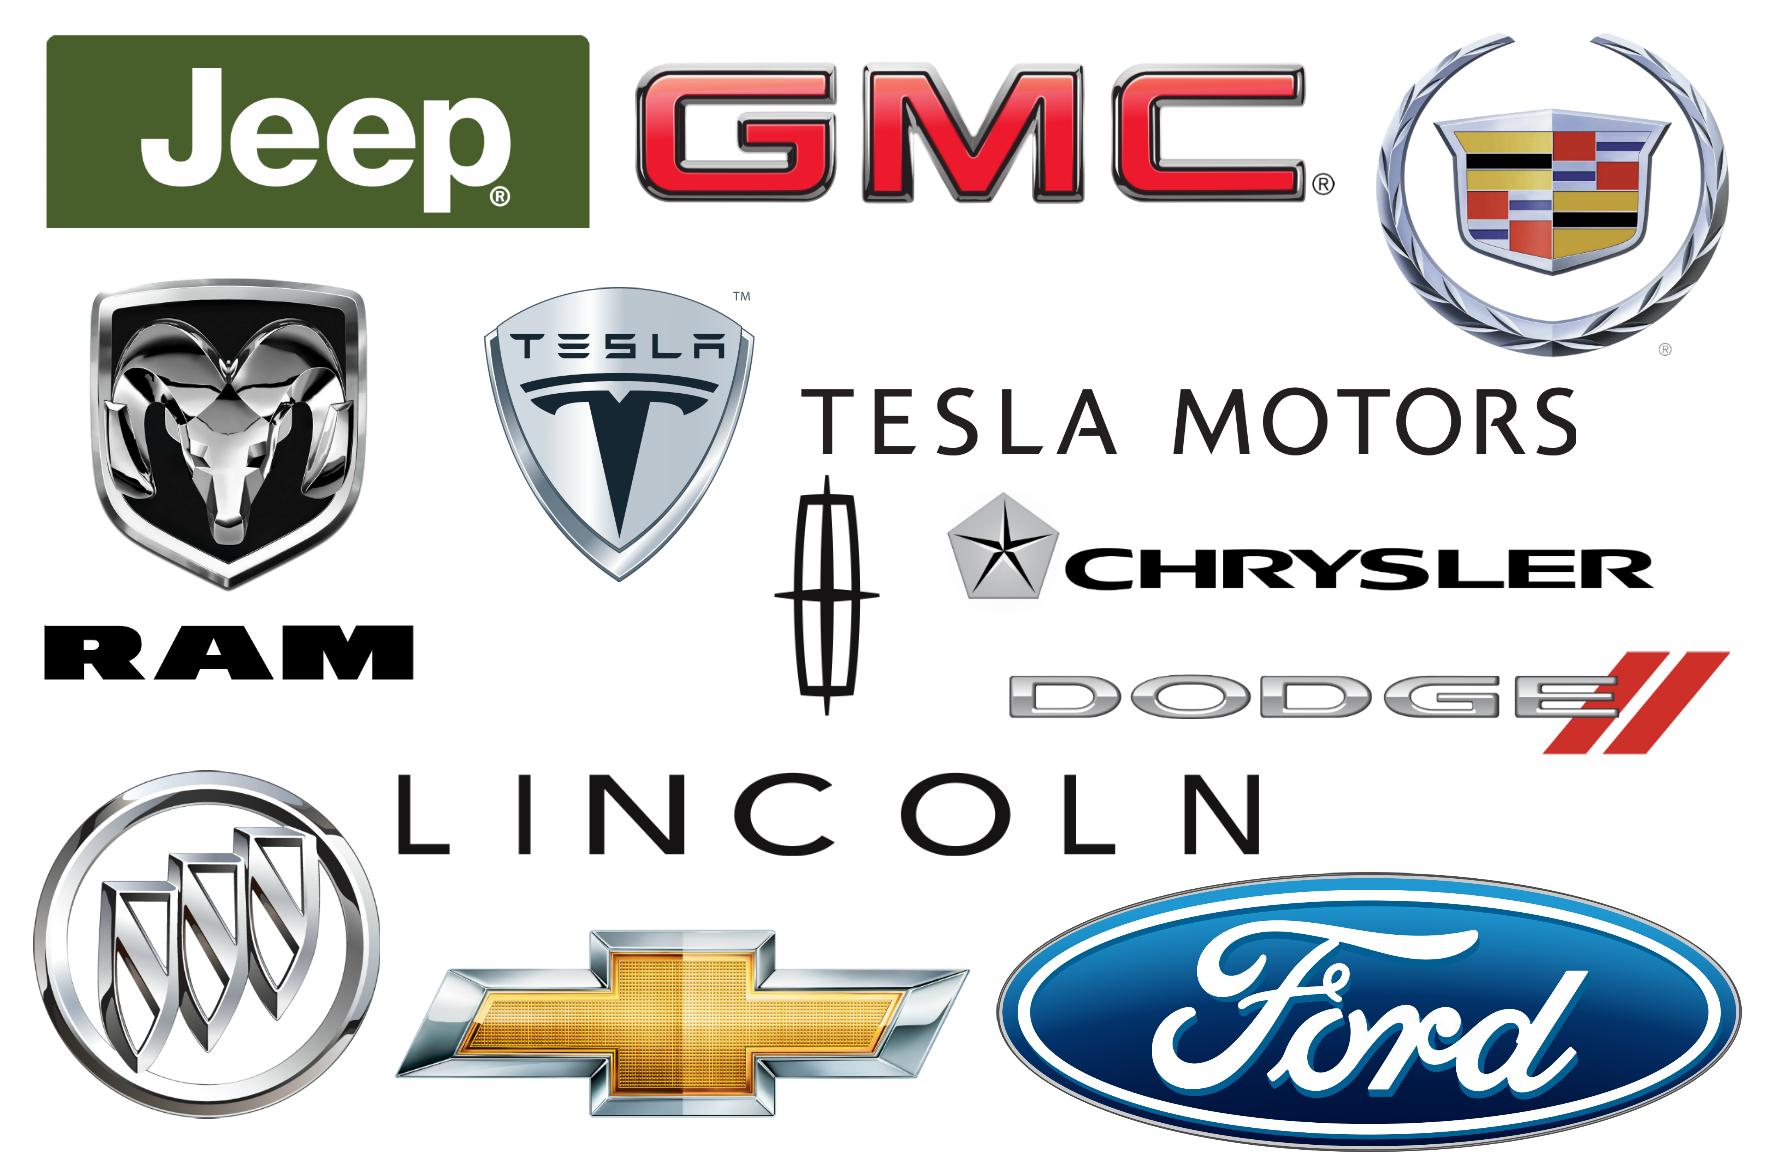 American Car Brands, Companies and Manufacturers | Car Brand Names com